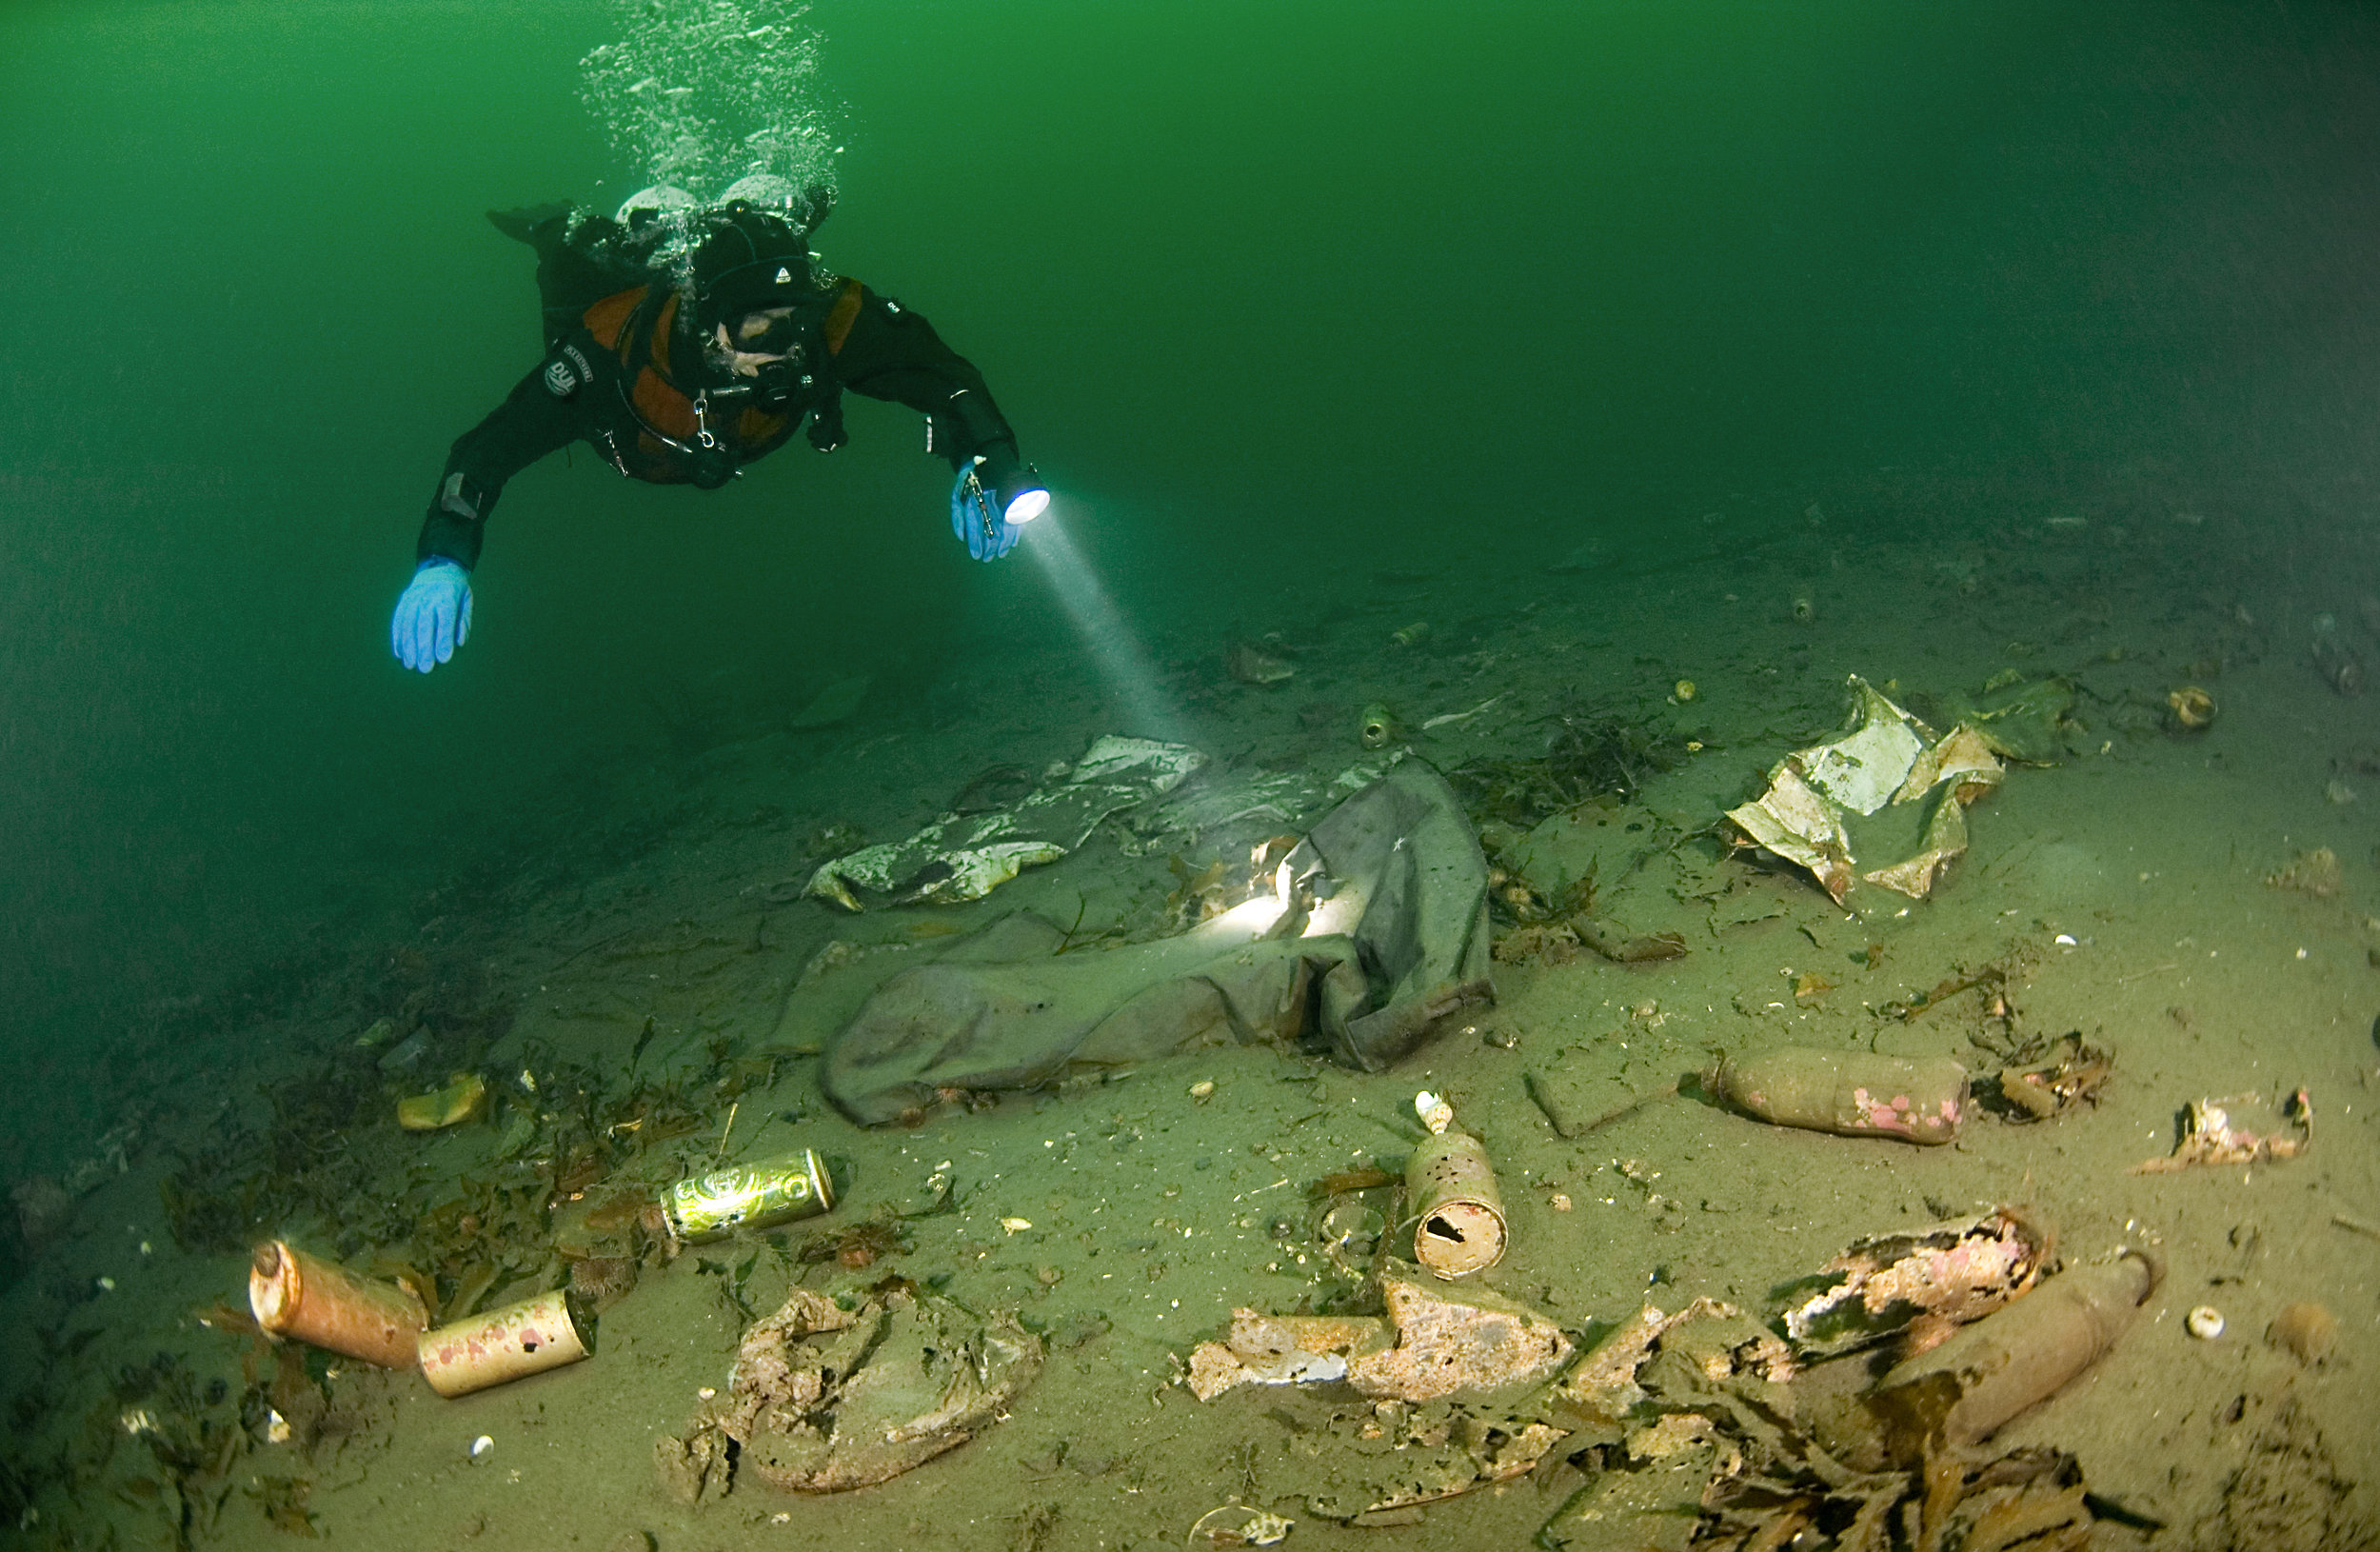 A diver shines a light on underwater pollution. Photo by:Fredrik Myhre / WWF-Norway